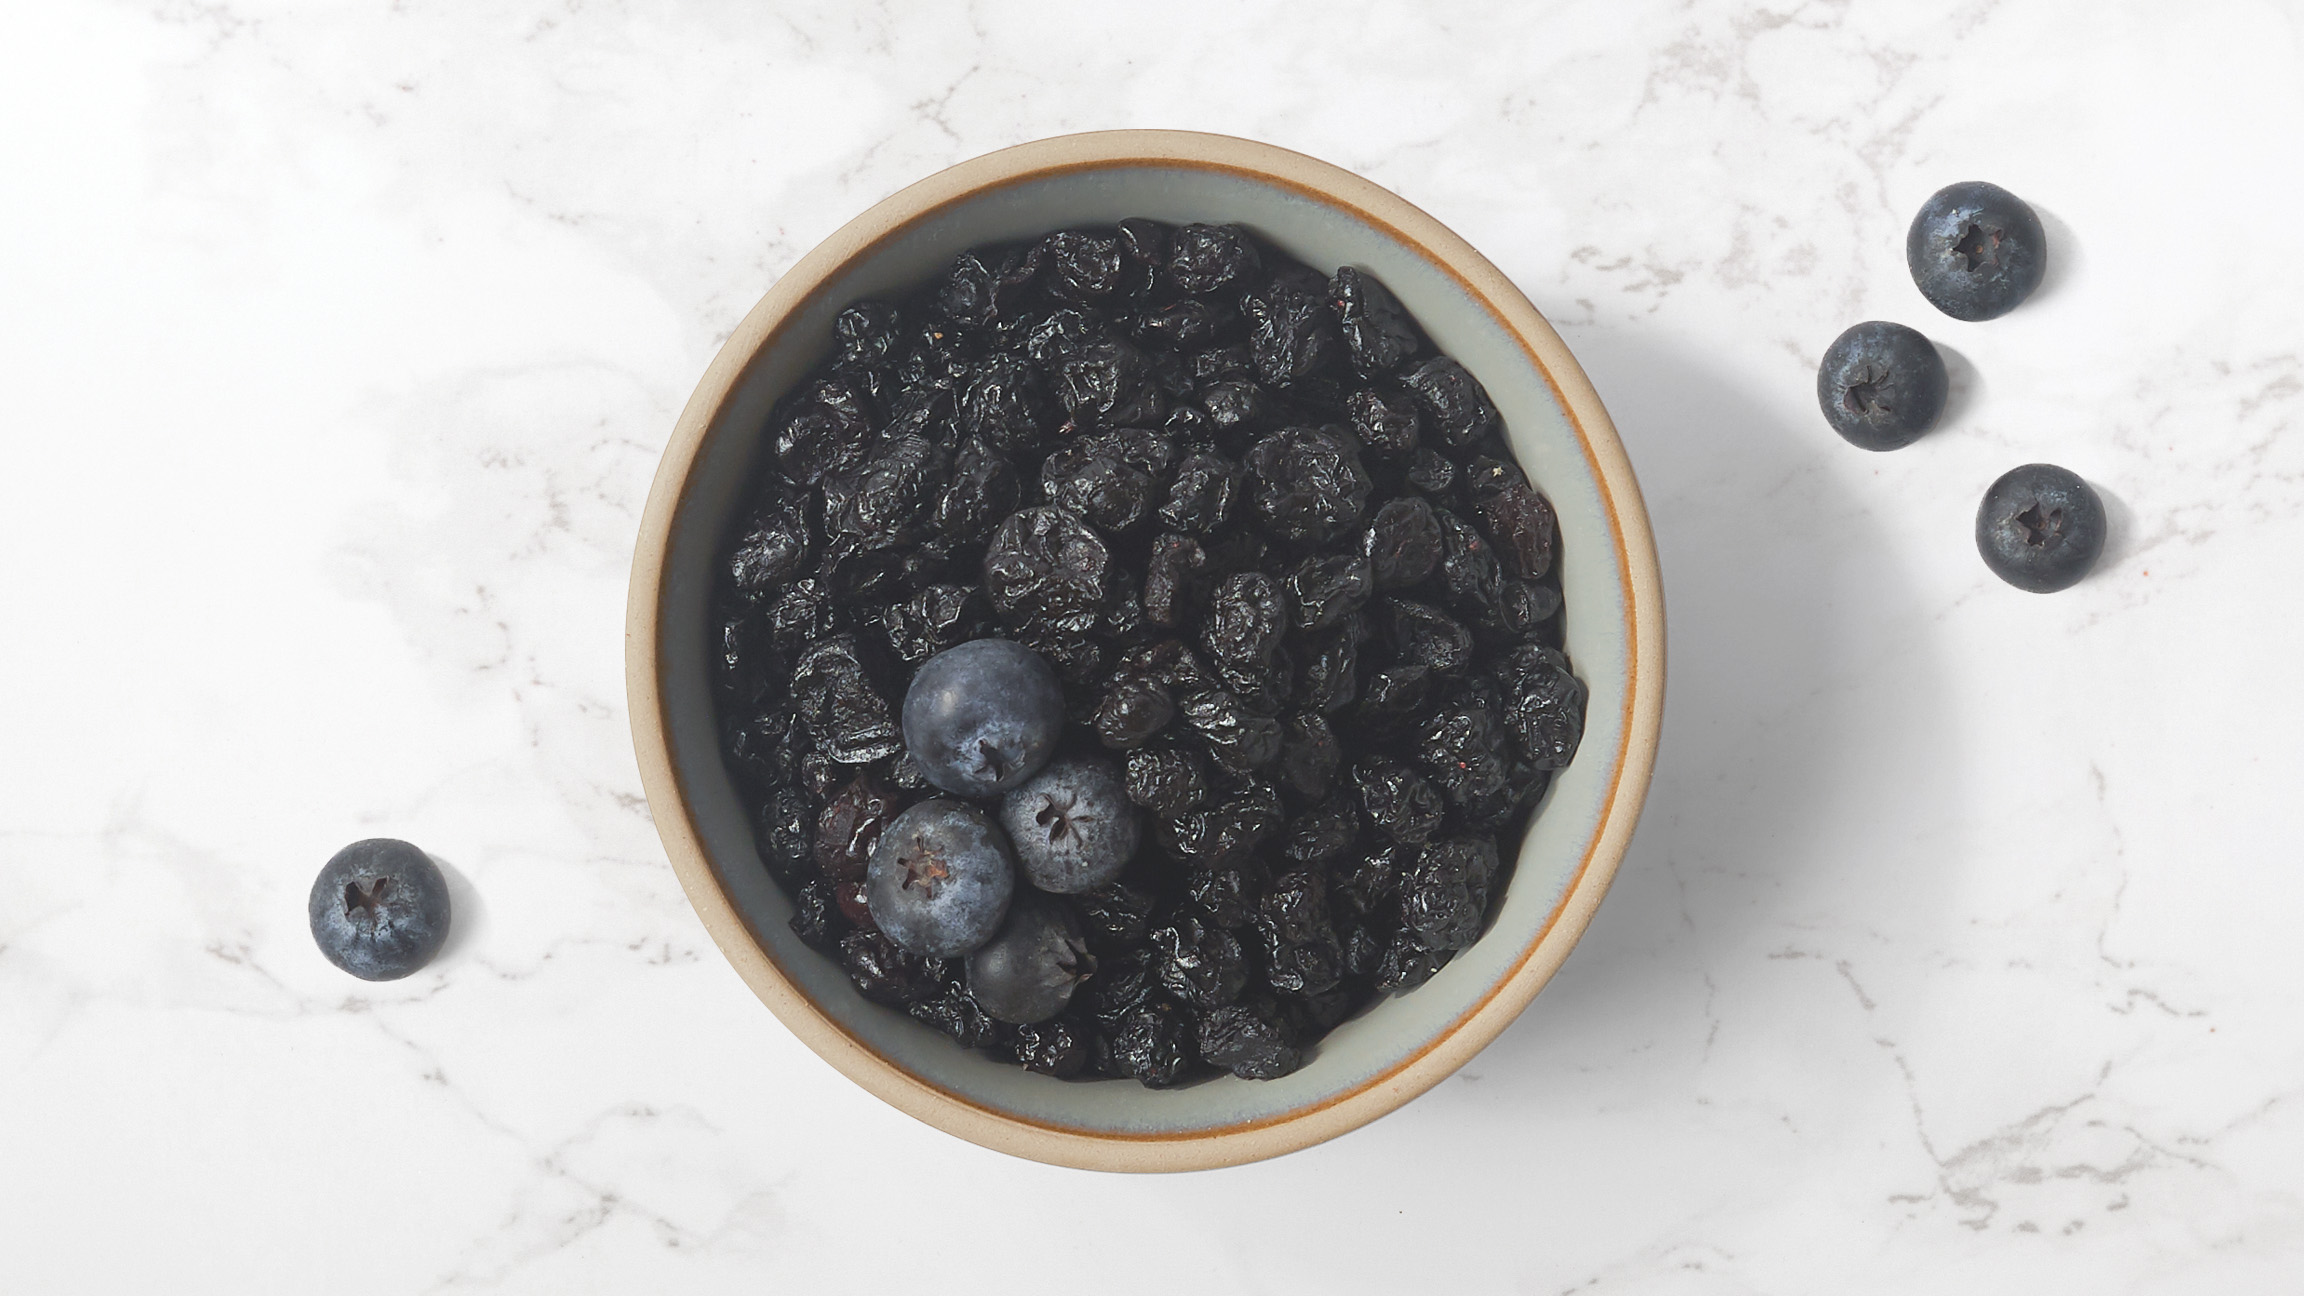 Dried blueberries in a ceramic bowl with fresh blueberries scattered on a marble counter